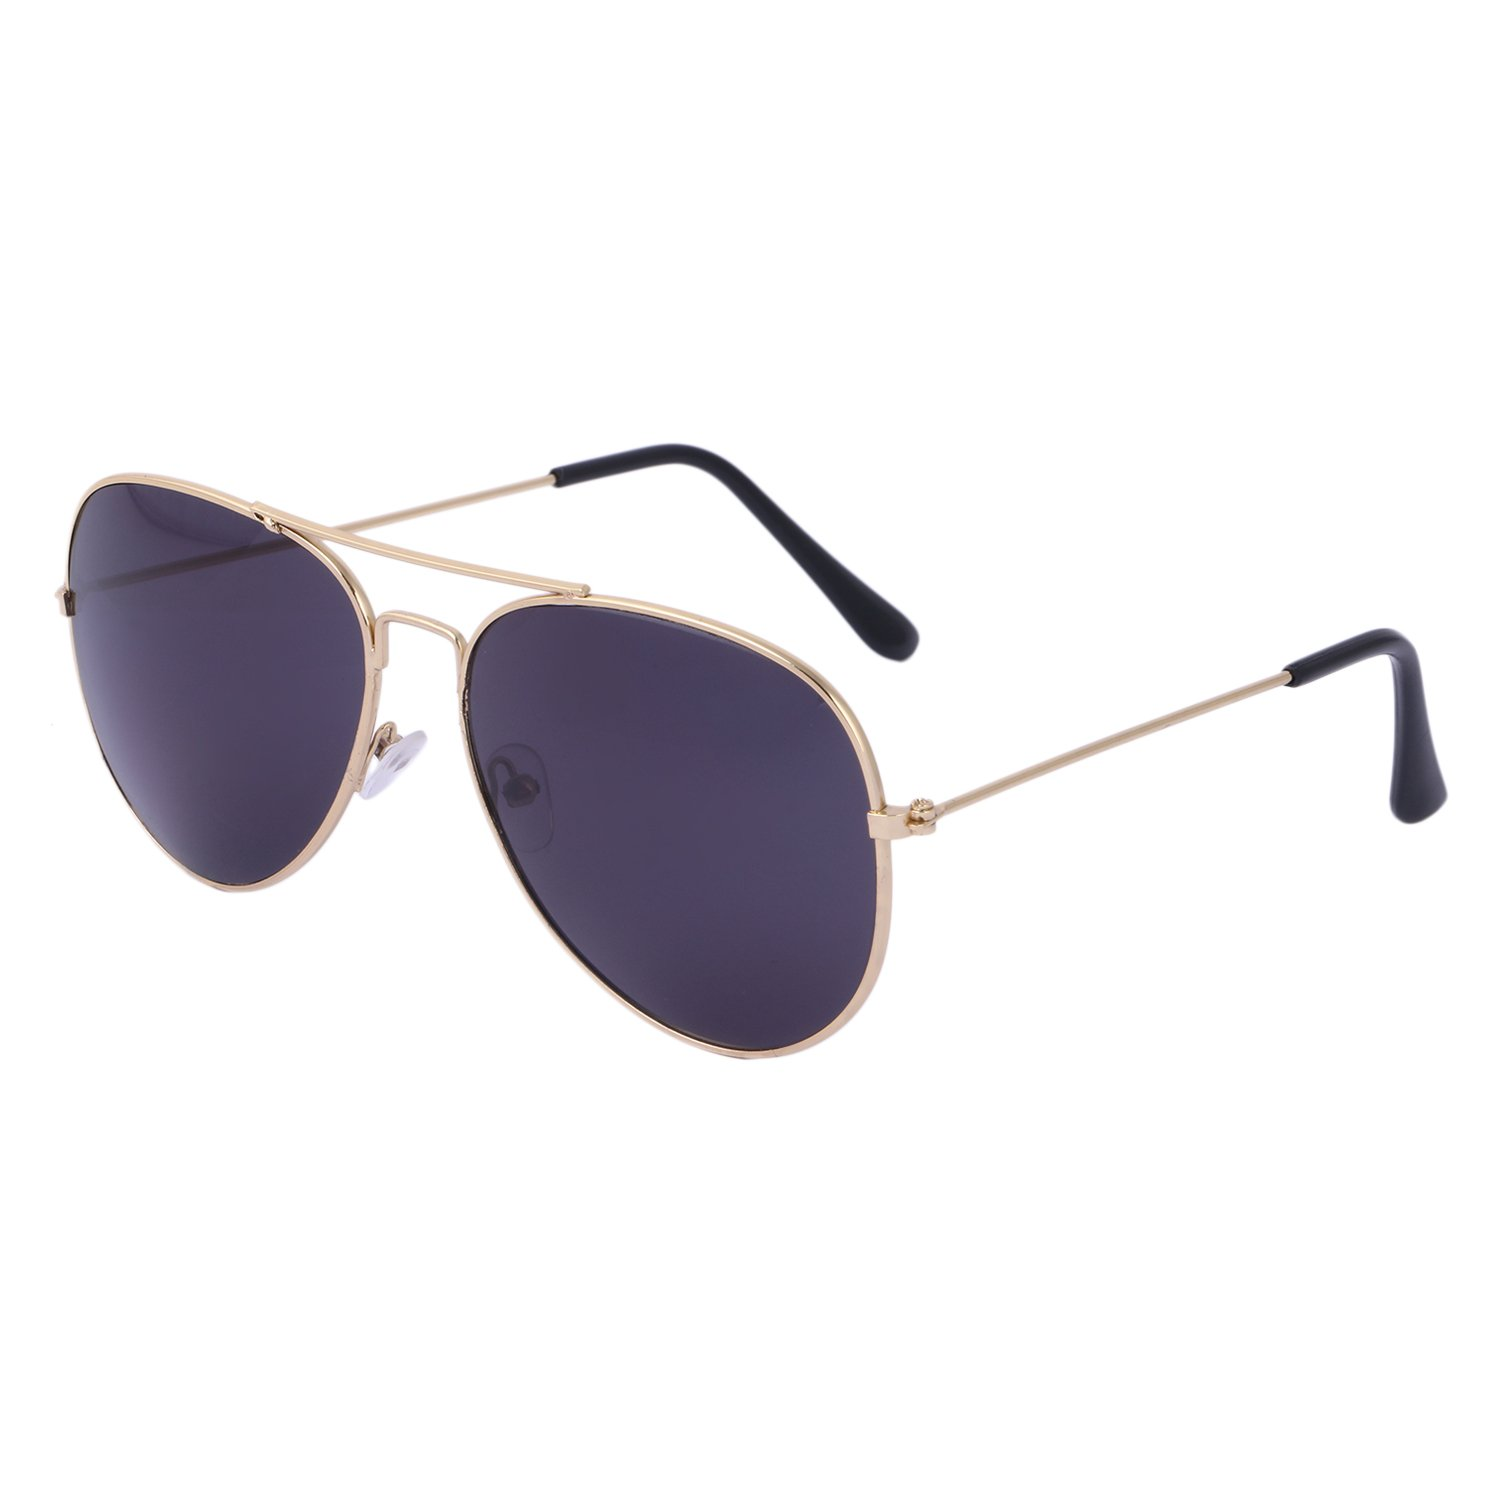 db3600ce4aa2c Amour Propre UV Protection and Polarized Aviator Unisex Sunglasses (C-A-5